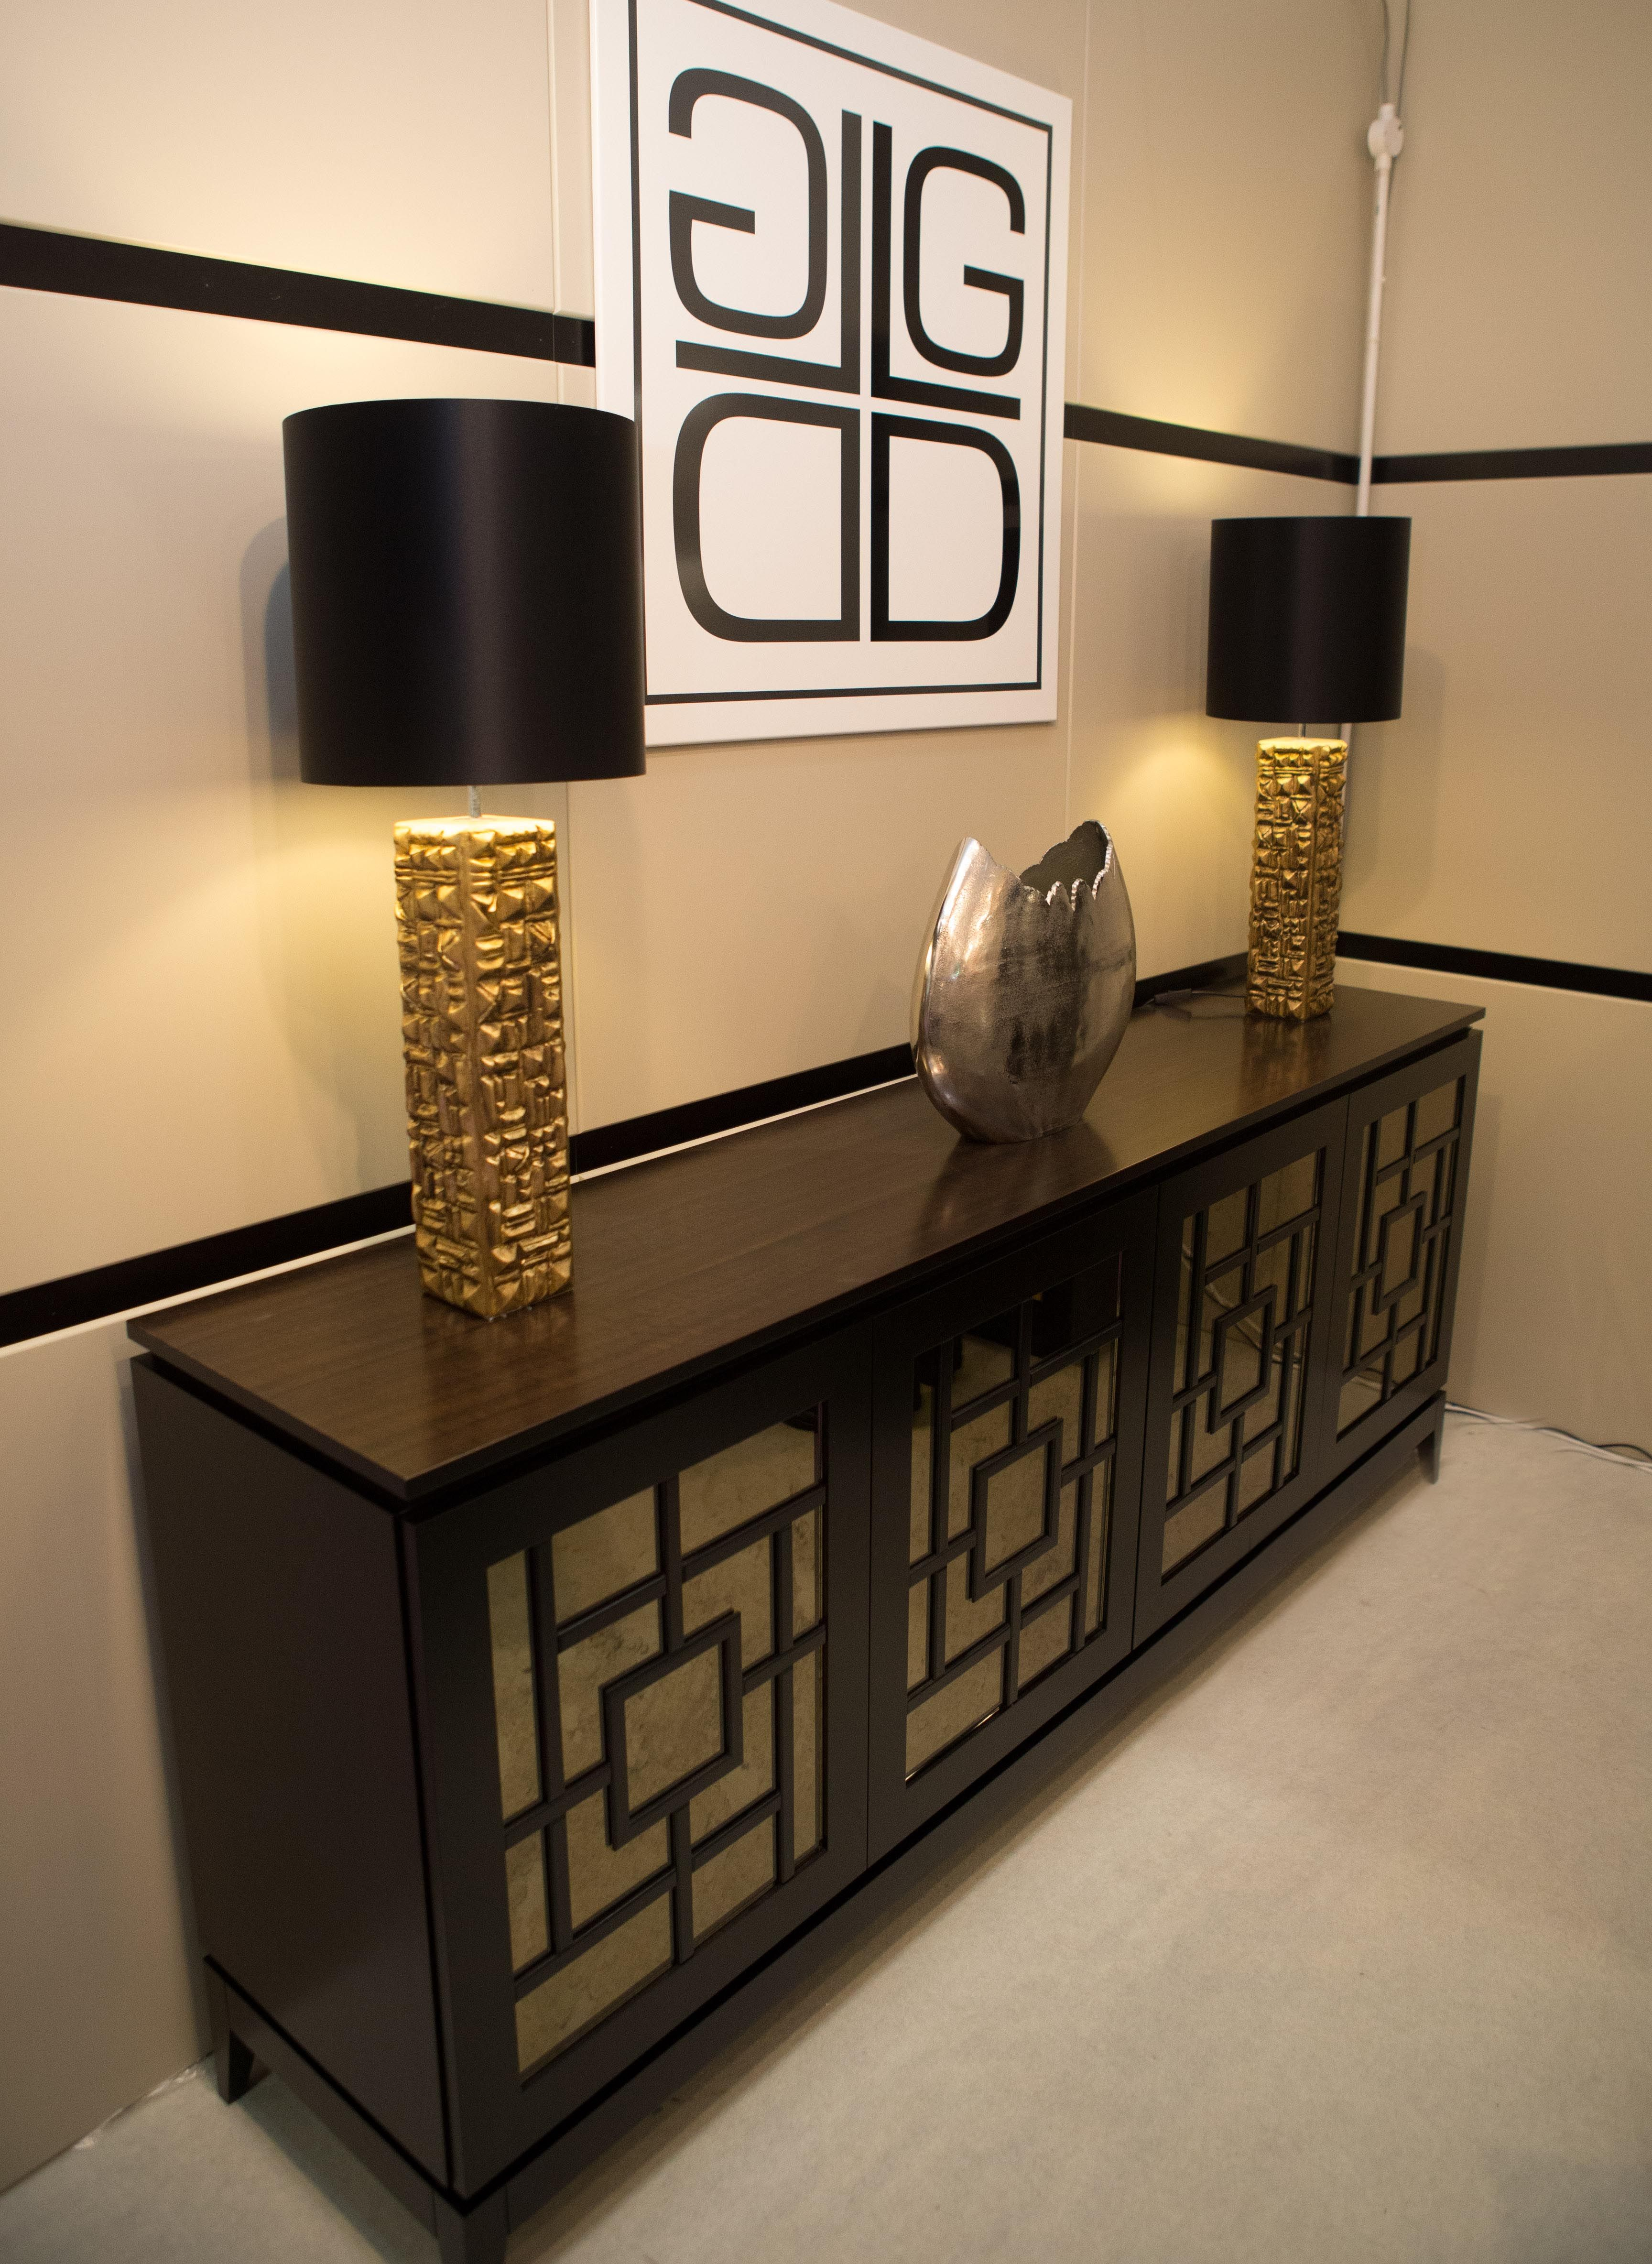 Sideboard Sideboard in Beech, stained to Black finish u2013 Bronze Antique Mirror Glass with